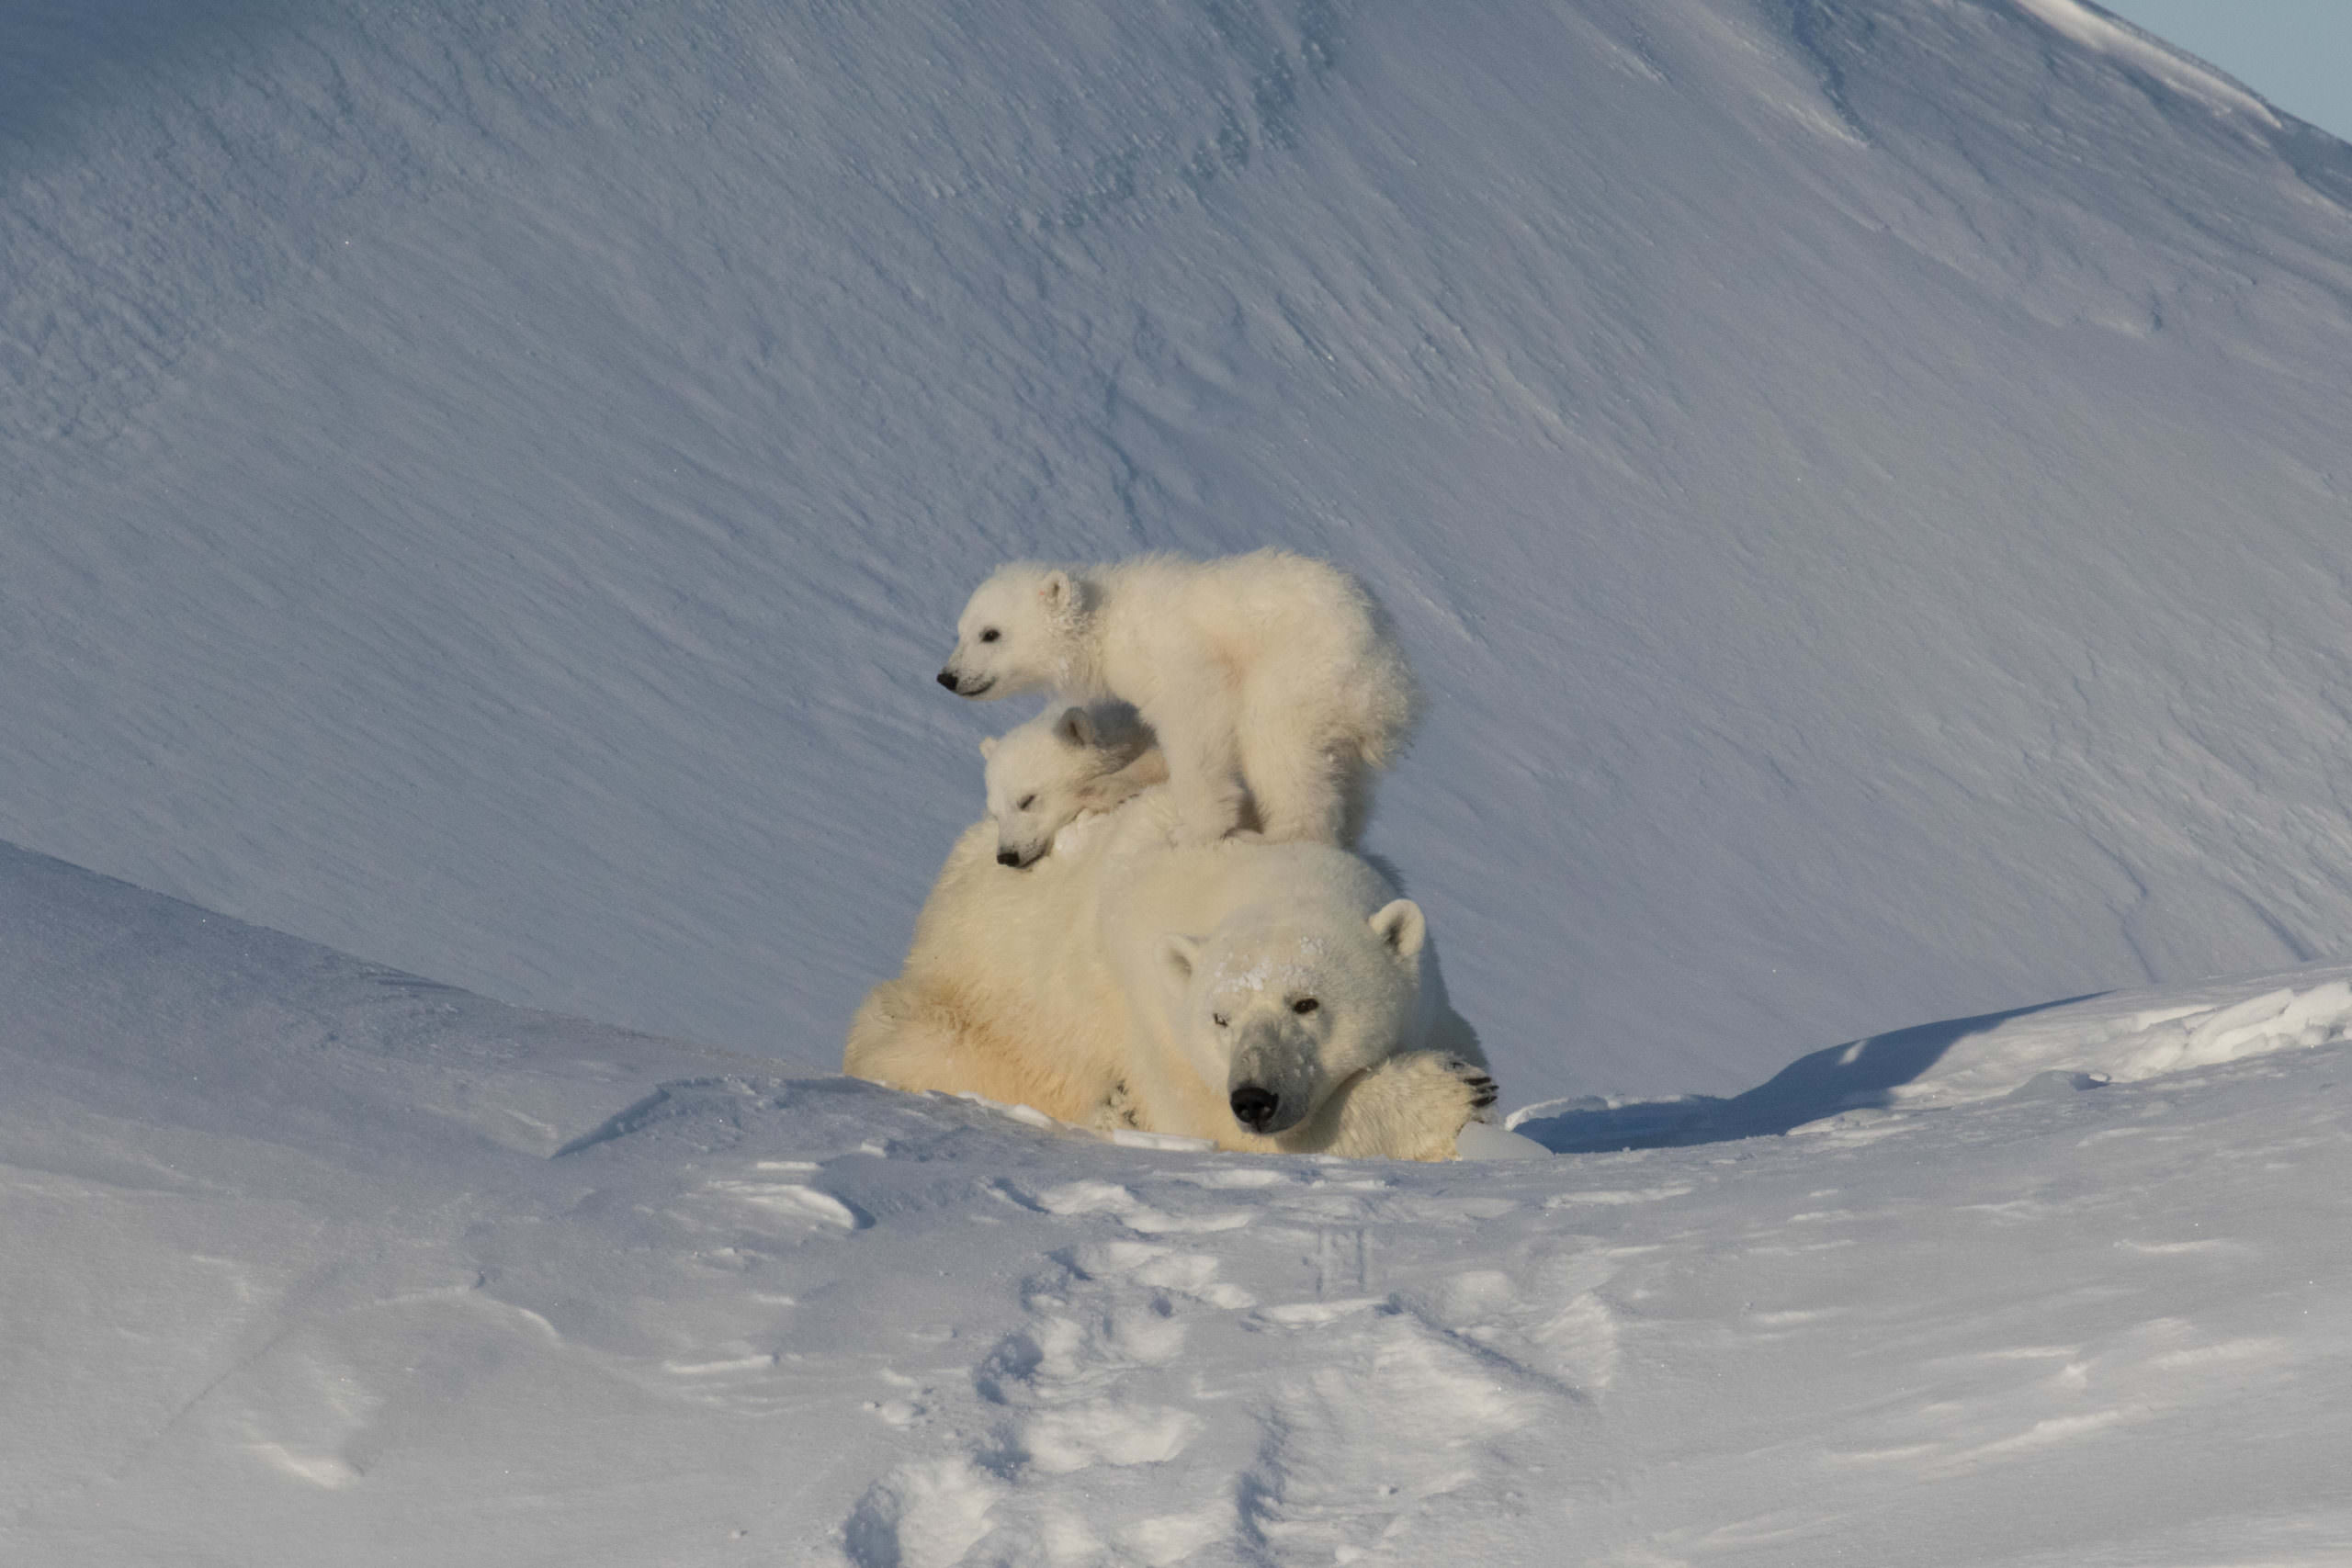 Polar bears, Narwhals, and Northern Lights